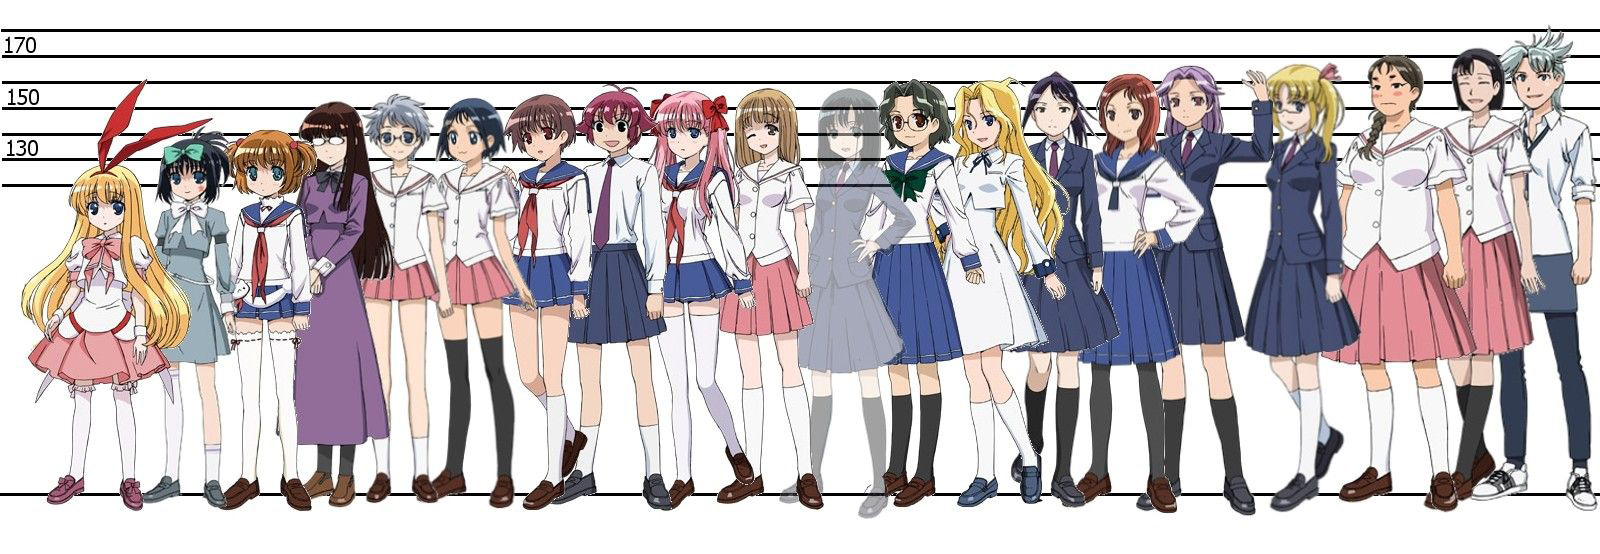 Anime Characters Height : Moe female anime characters height comparison chart